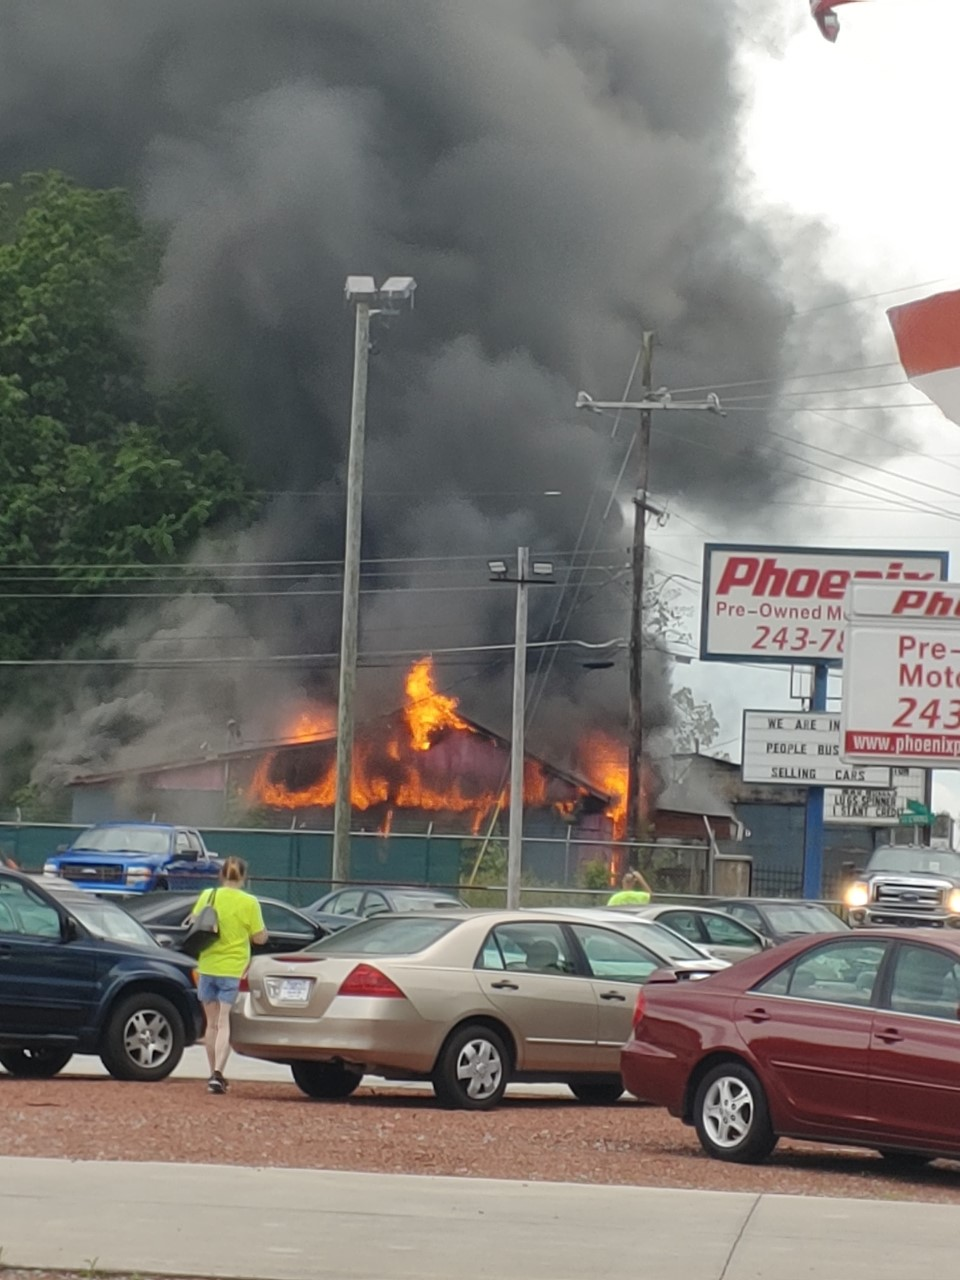 Lexington Fire crews working to extinguish blaze (credit: Zack Staley)